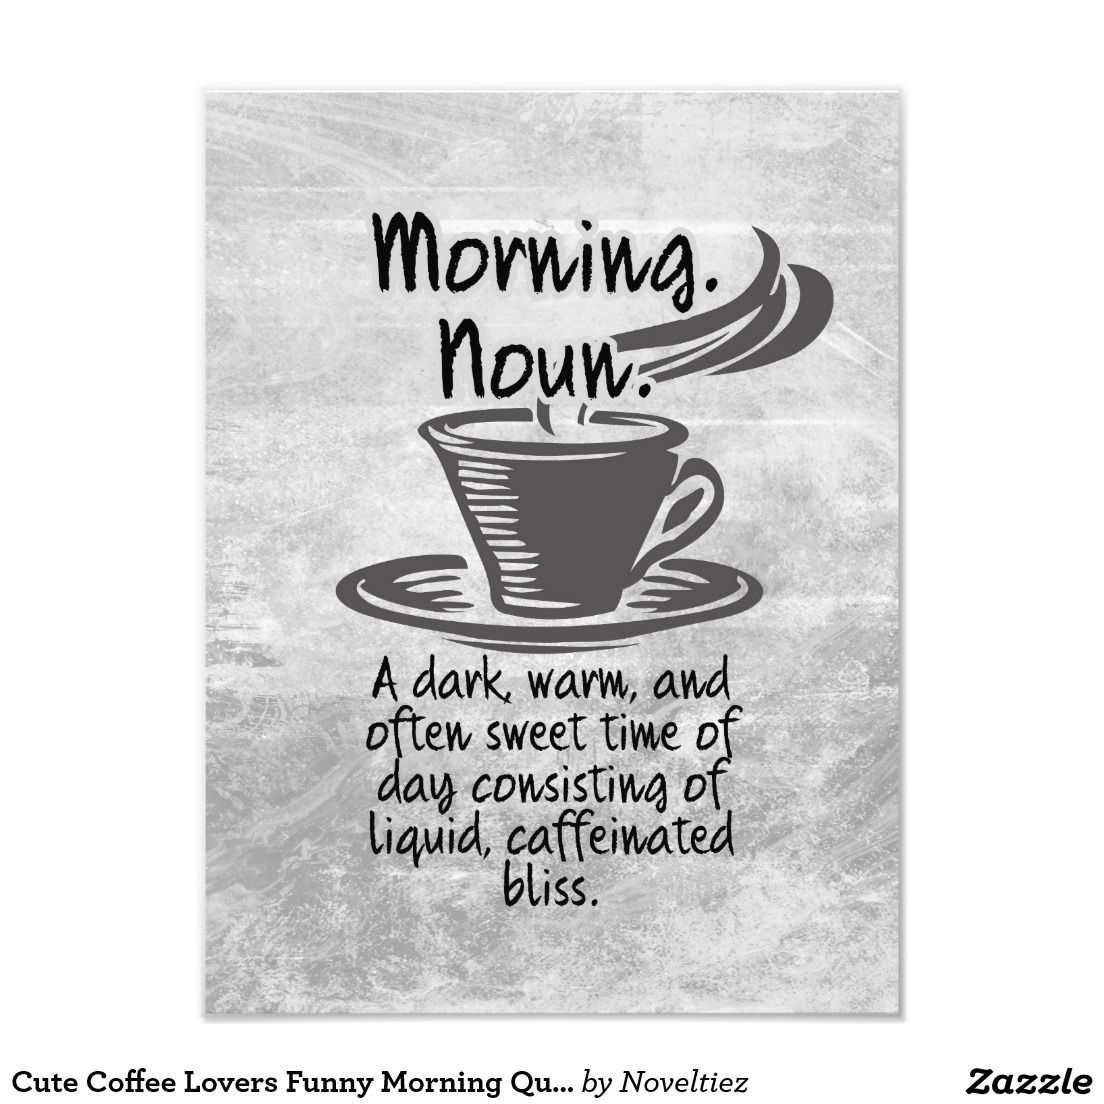 Cute Coffee Lovers Funny Morning Quote Print